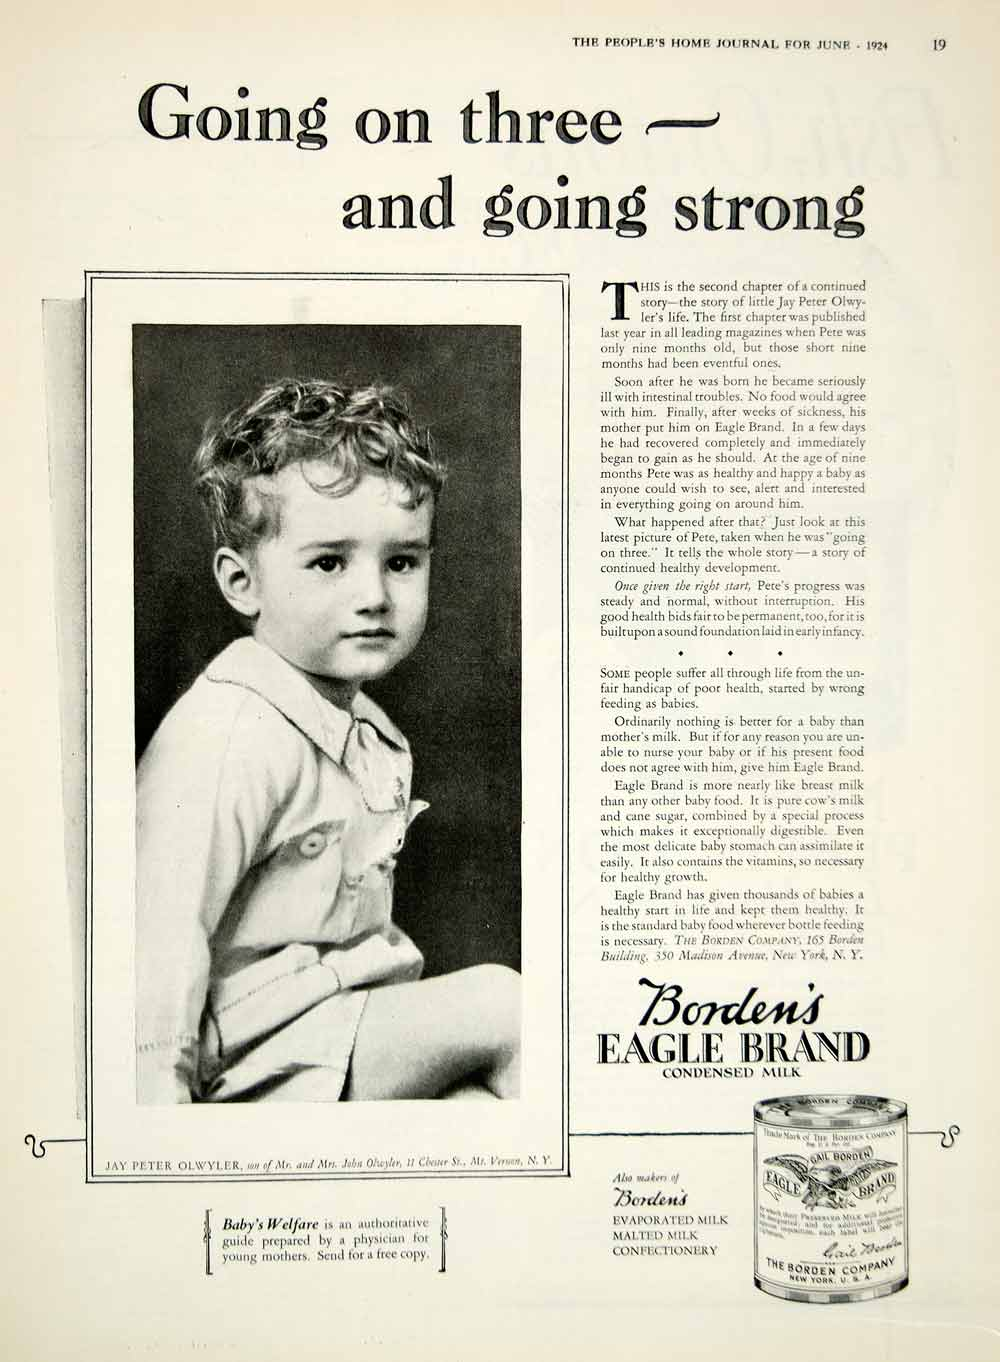 1924 Ad Bordens Eagle Brand Condensed Milk Jay Peter Olwyler Child Dairy YPHJ1